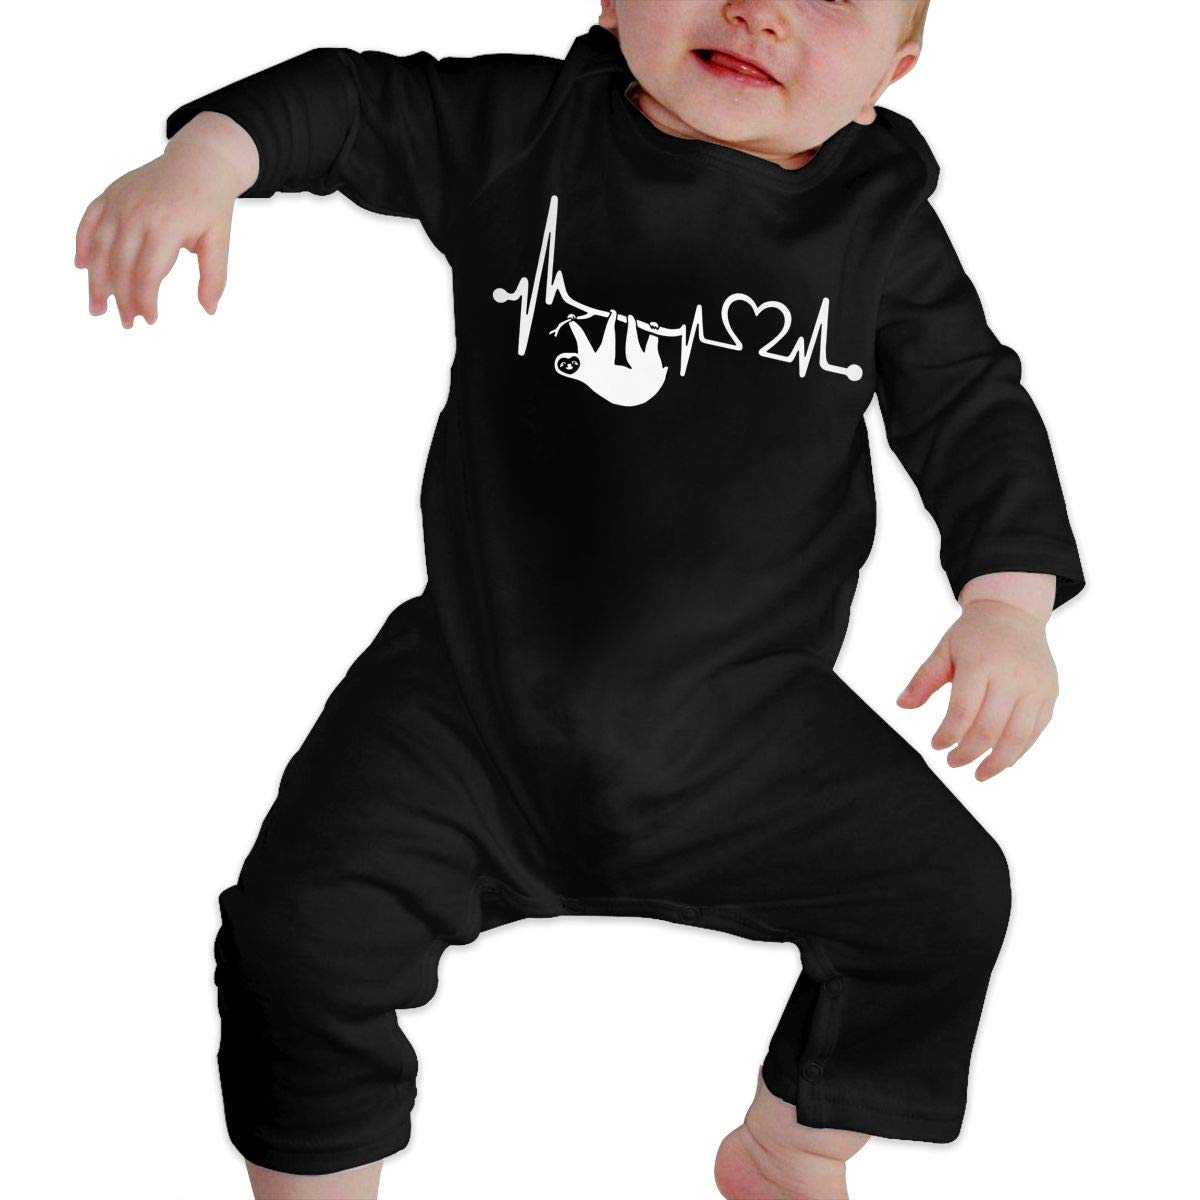 Baby Boy Girl Long Sleeved Coveralls Heartbeat Sloth Infant Long Sleeve Romper Jumpsuit